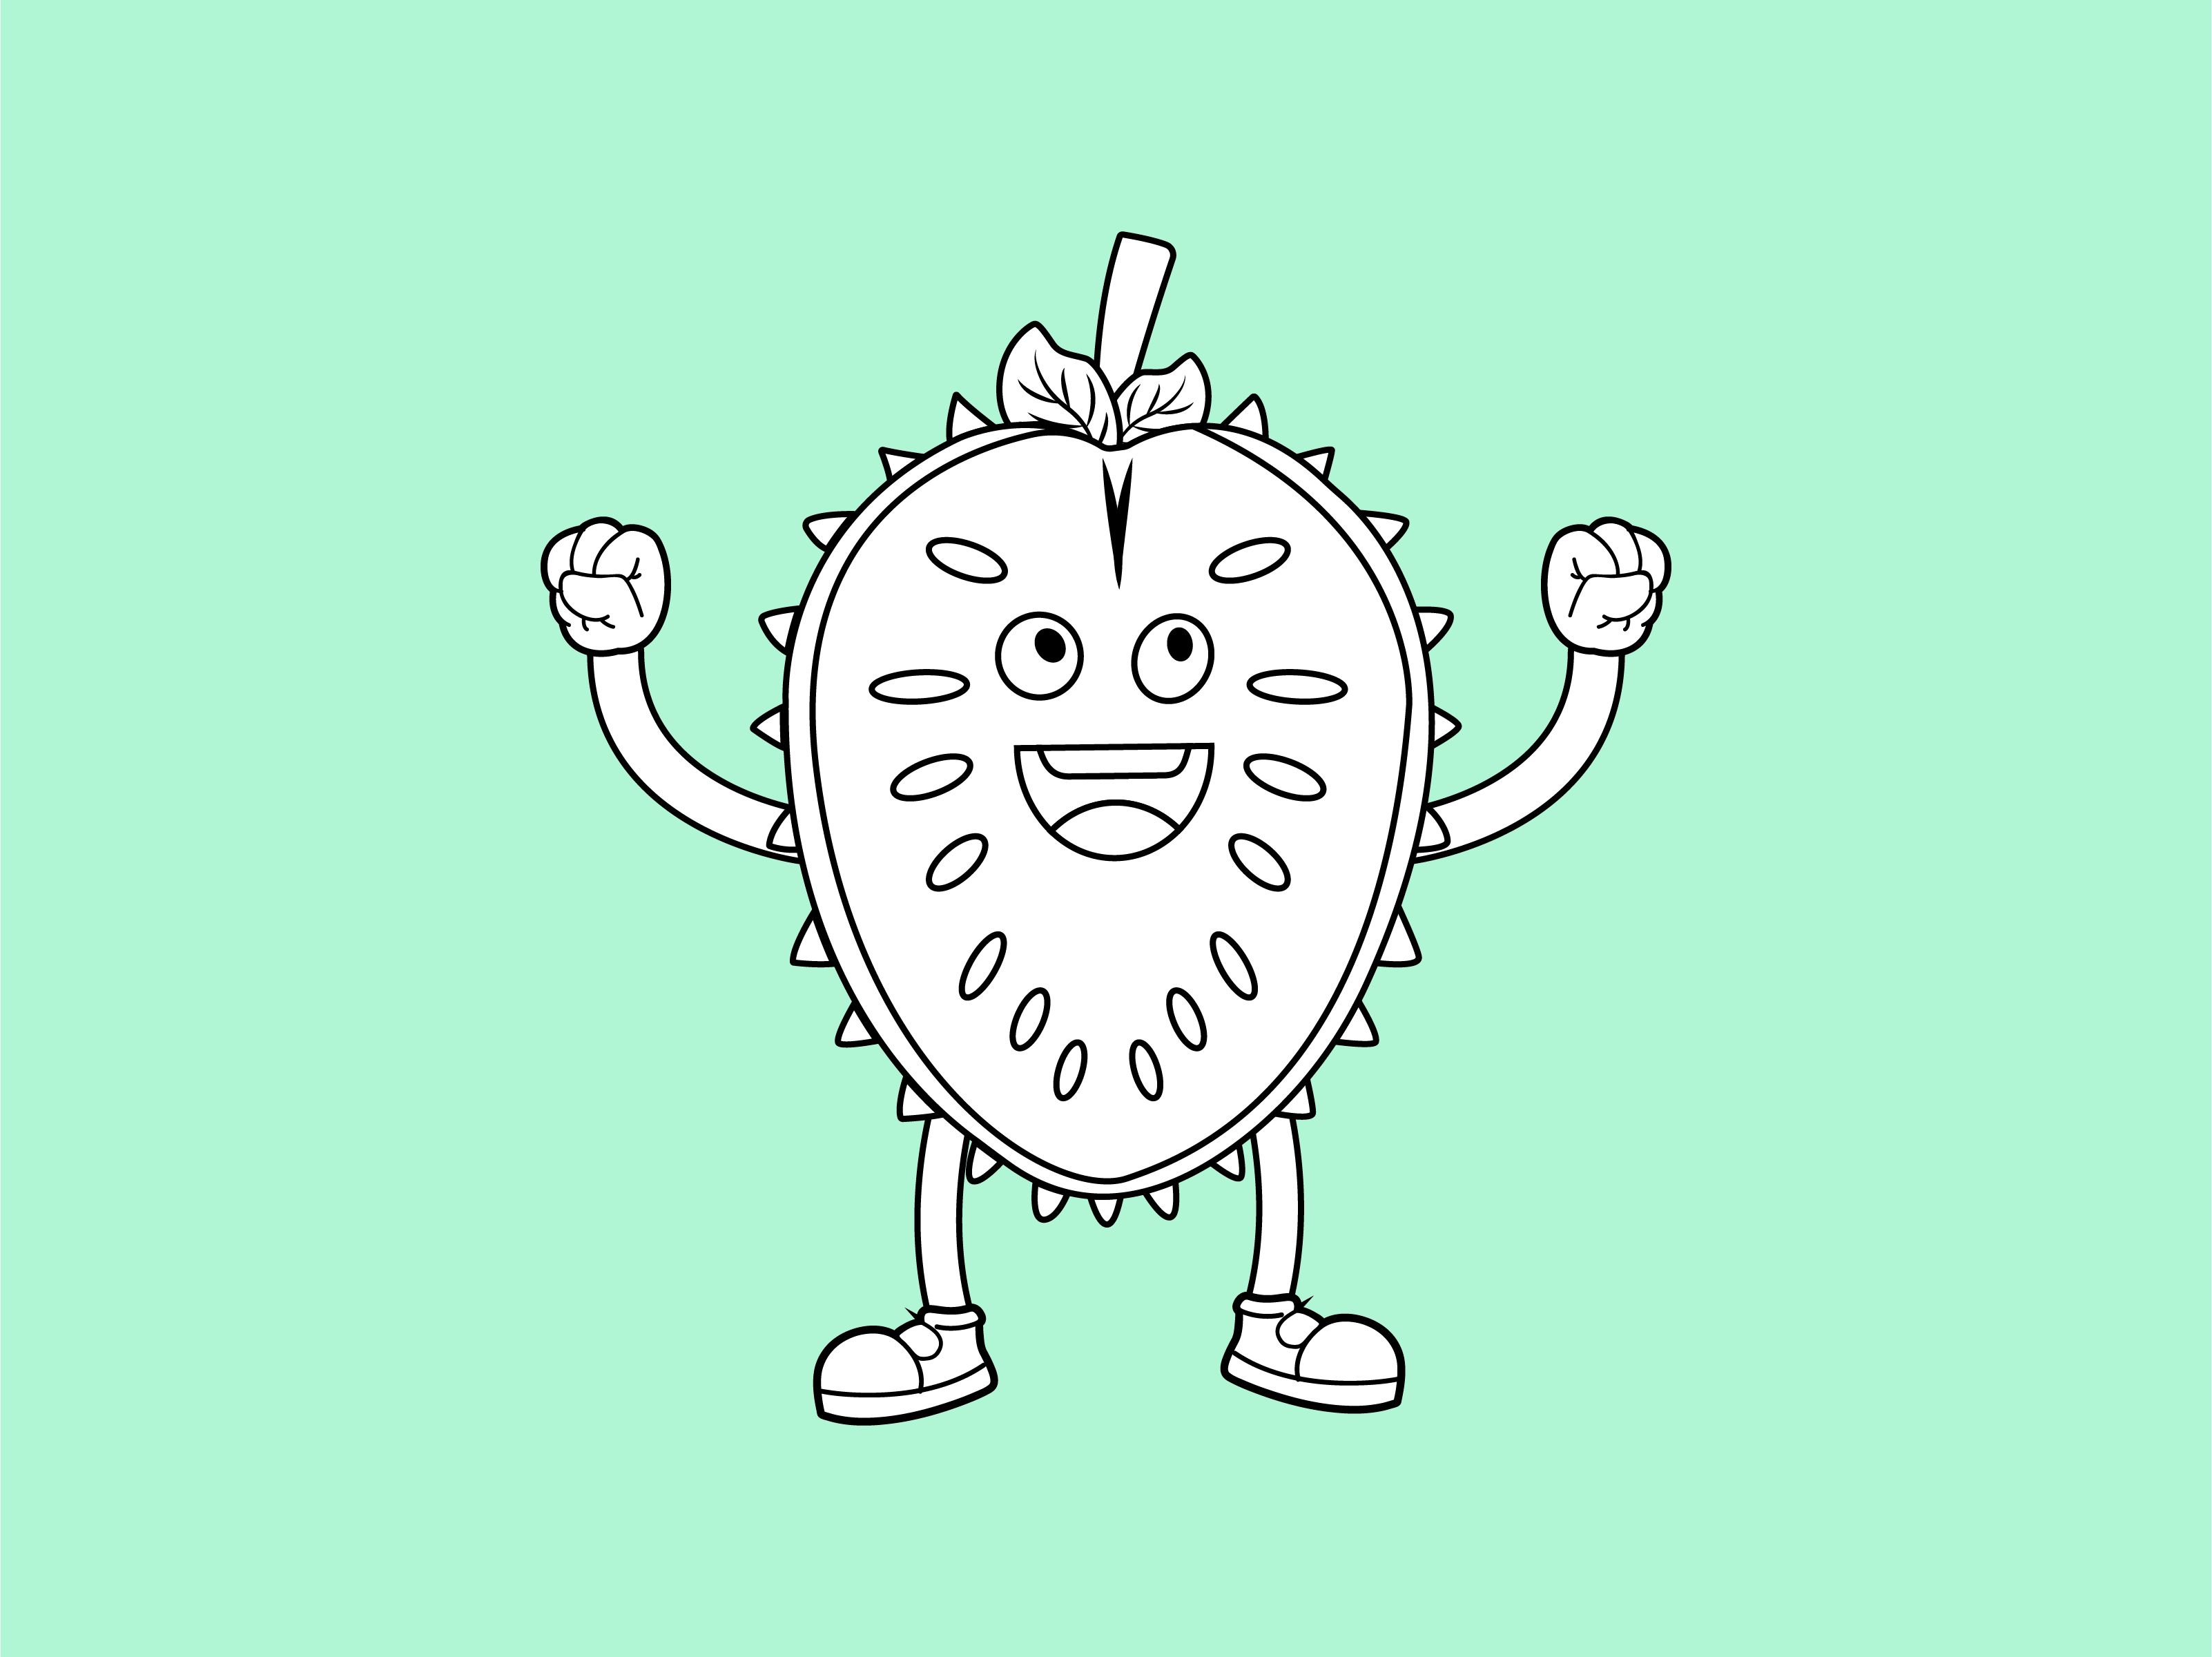 Download Free Soursop Outline Icon Cartoon Character Graphic By 1tokosepatu Creative Fabrica for Cricut Explore, Silhouette and other cutting machines.